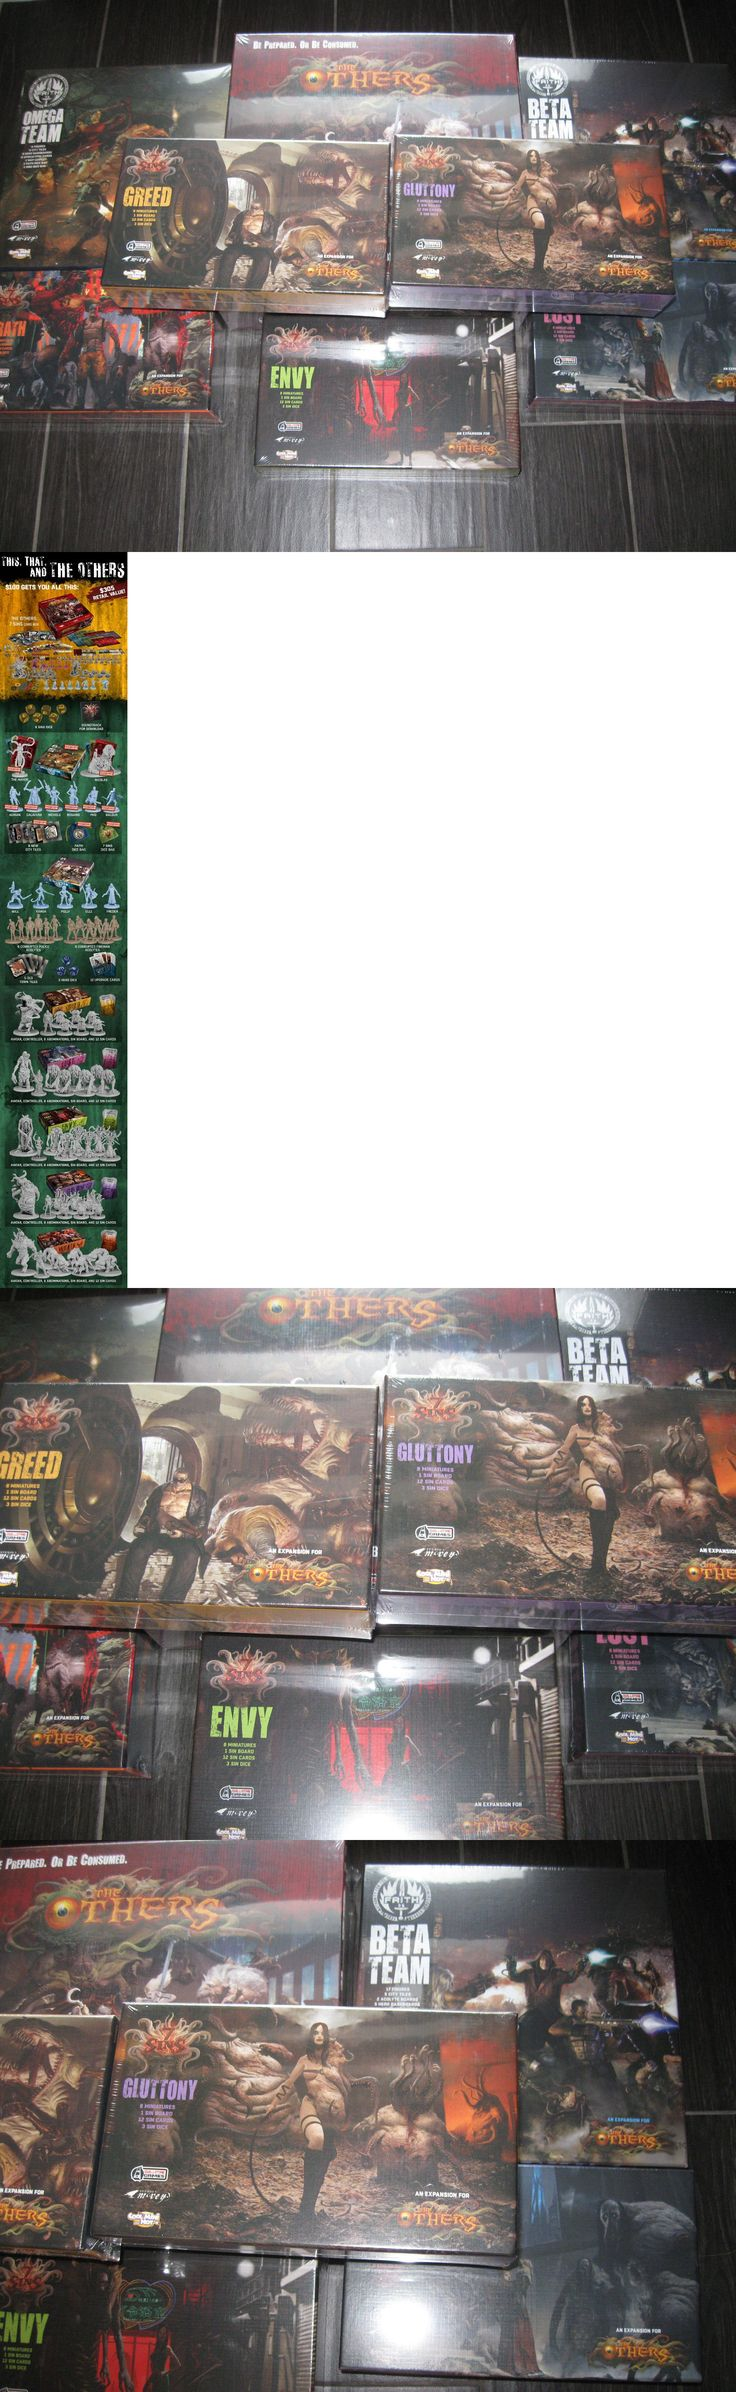 Contemporary Manufacture 180349: The Others 7 Deadly Sins Board Game Faith Pledge Cmon Kickstarter Exclusive Ks -> BUY IT NOW ONLY: $274.75 on eBay!